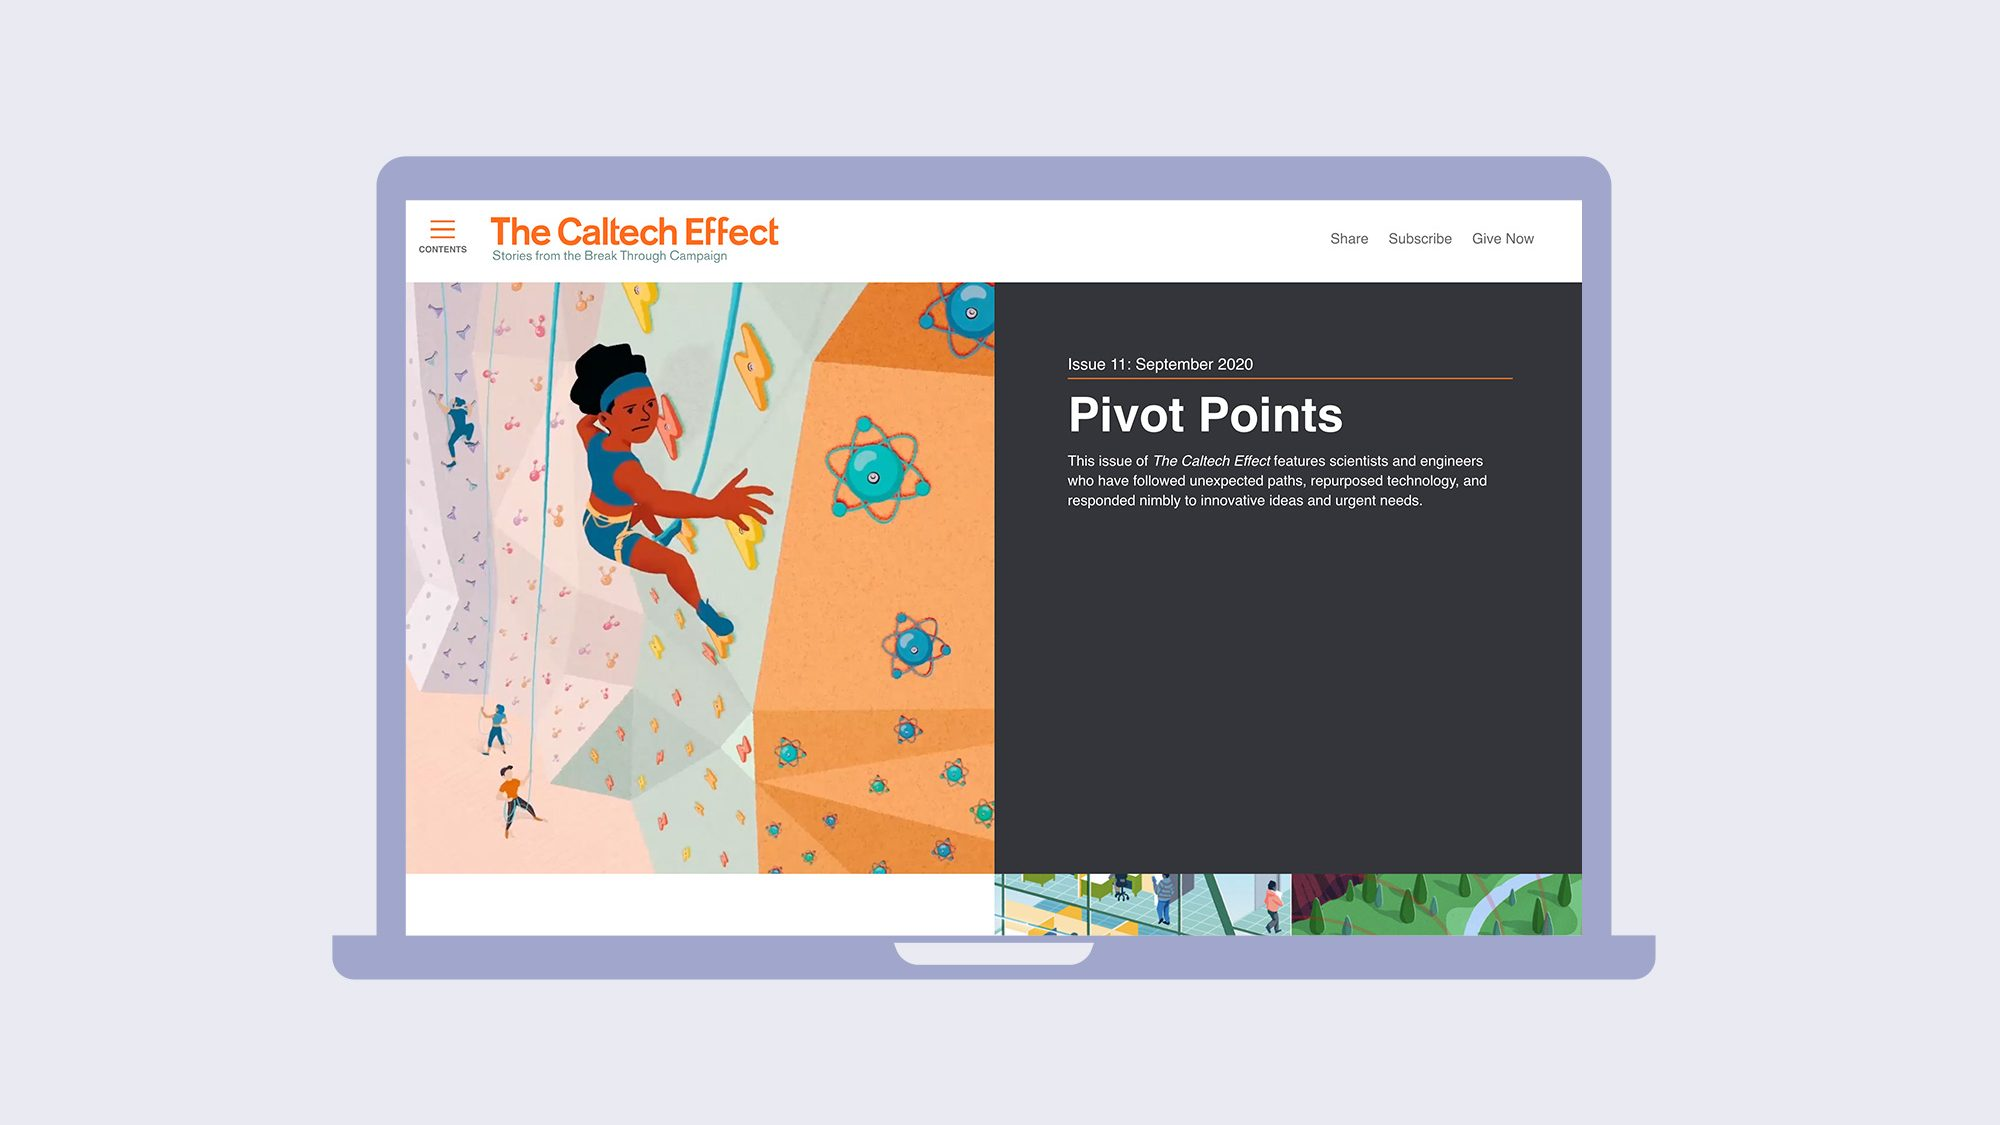 Website screenshot. Colorful illustration of someone wall climbing.